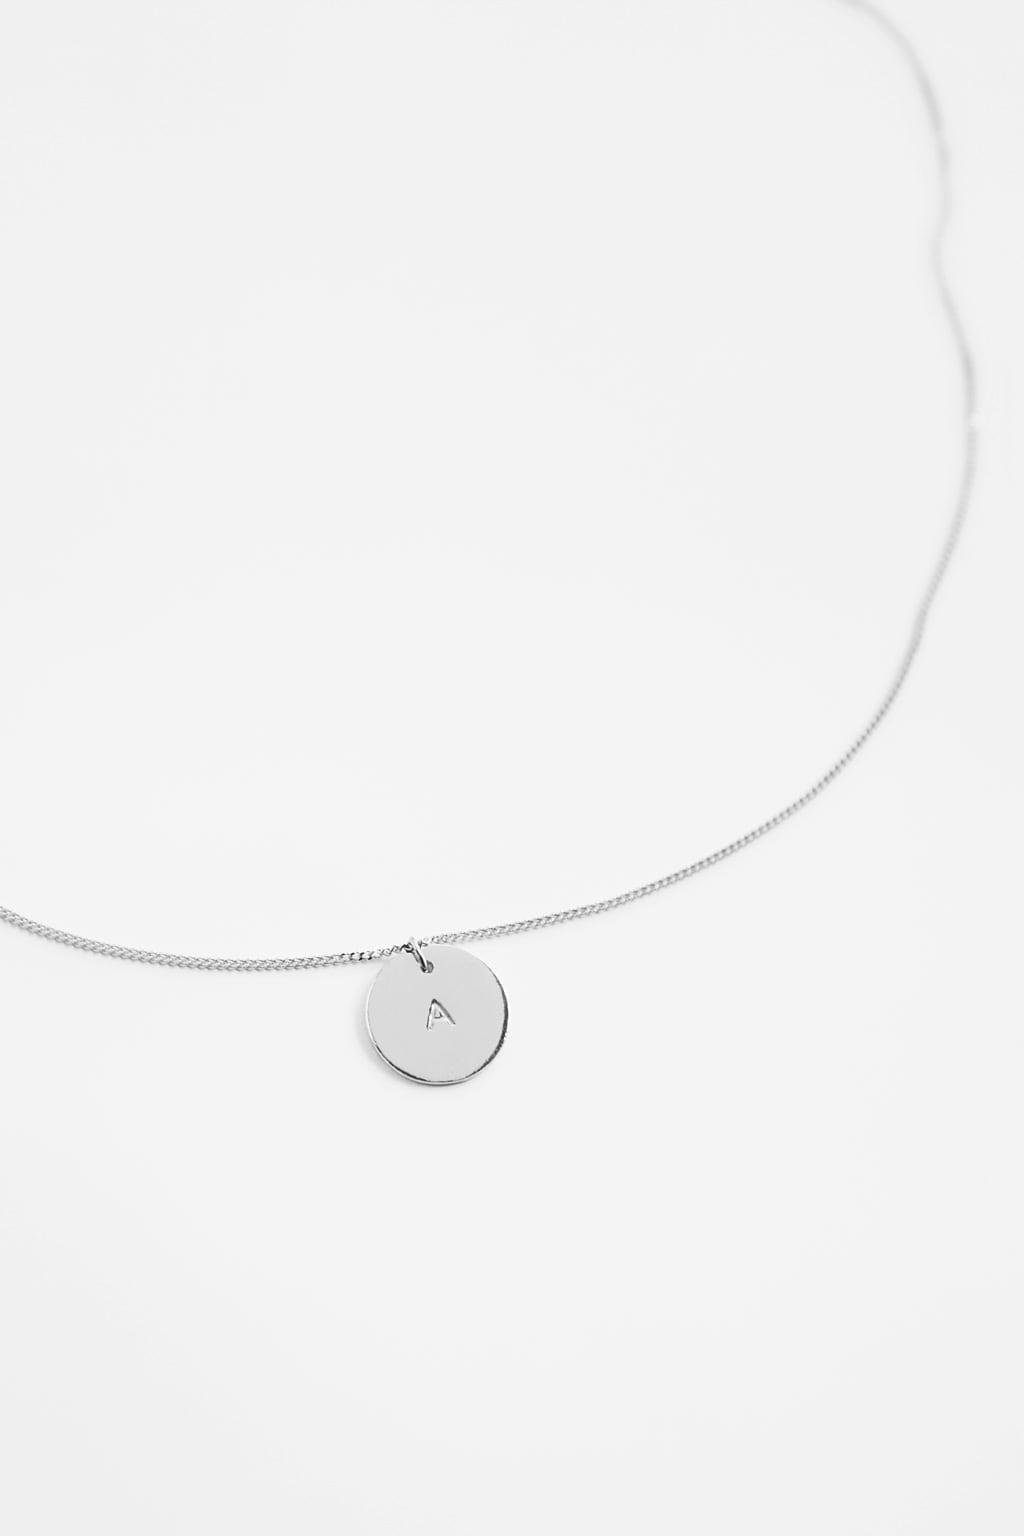 STERLING SILVER NECKLACE WITH MEDALLION